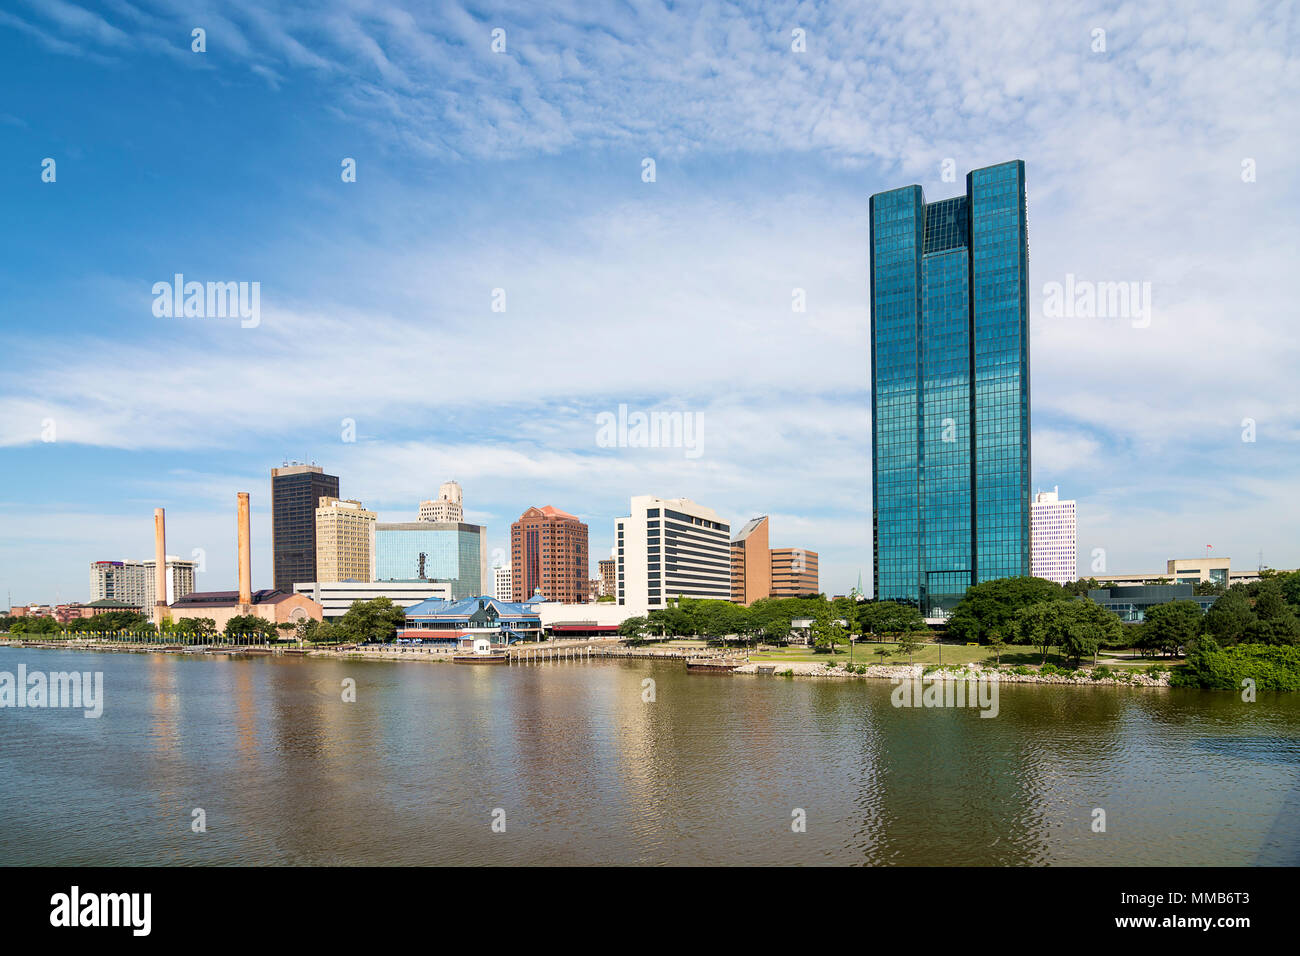 A panoramic view of downtown Toledo Ohio's skyline and the Maumee river.  A beautiful  blue sky with white clouds for a backdrop. Stock Photo